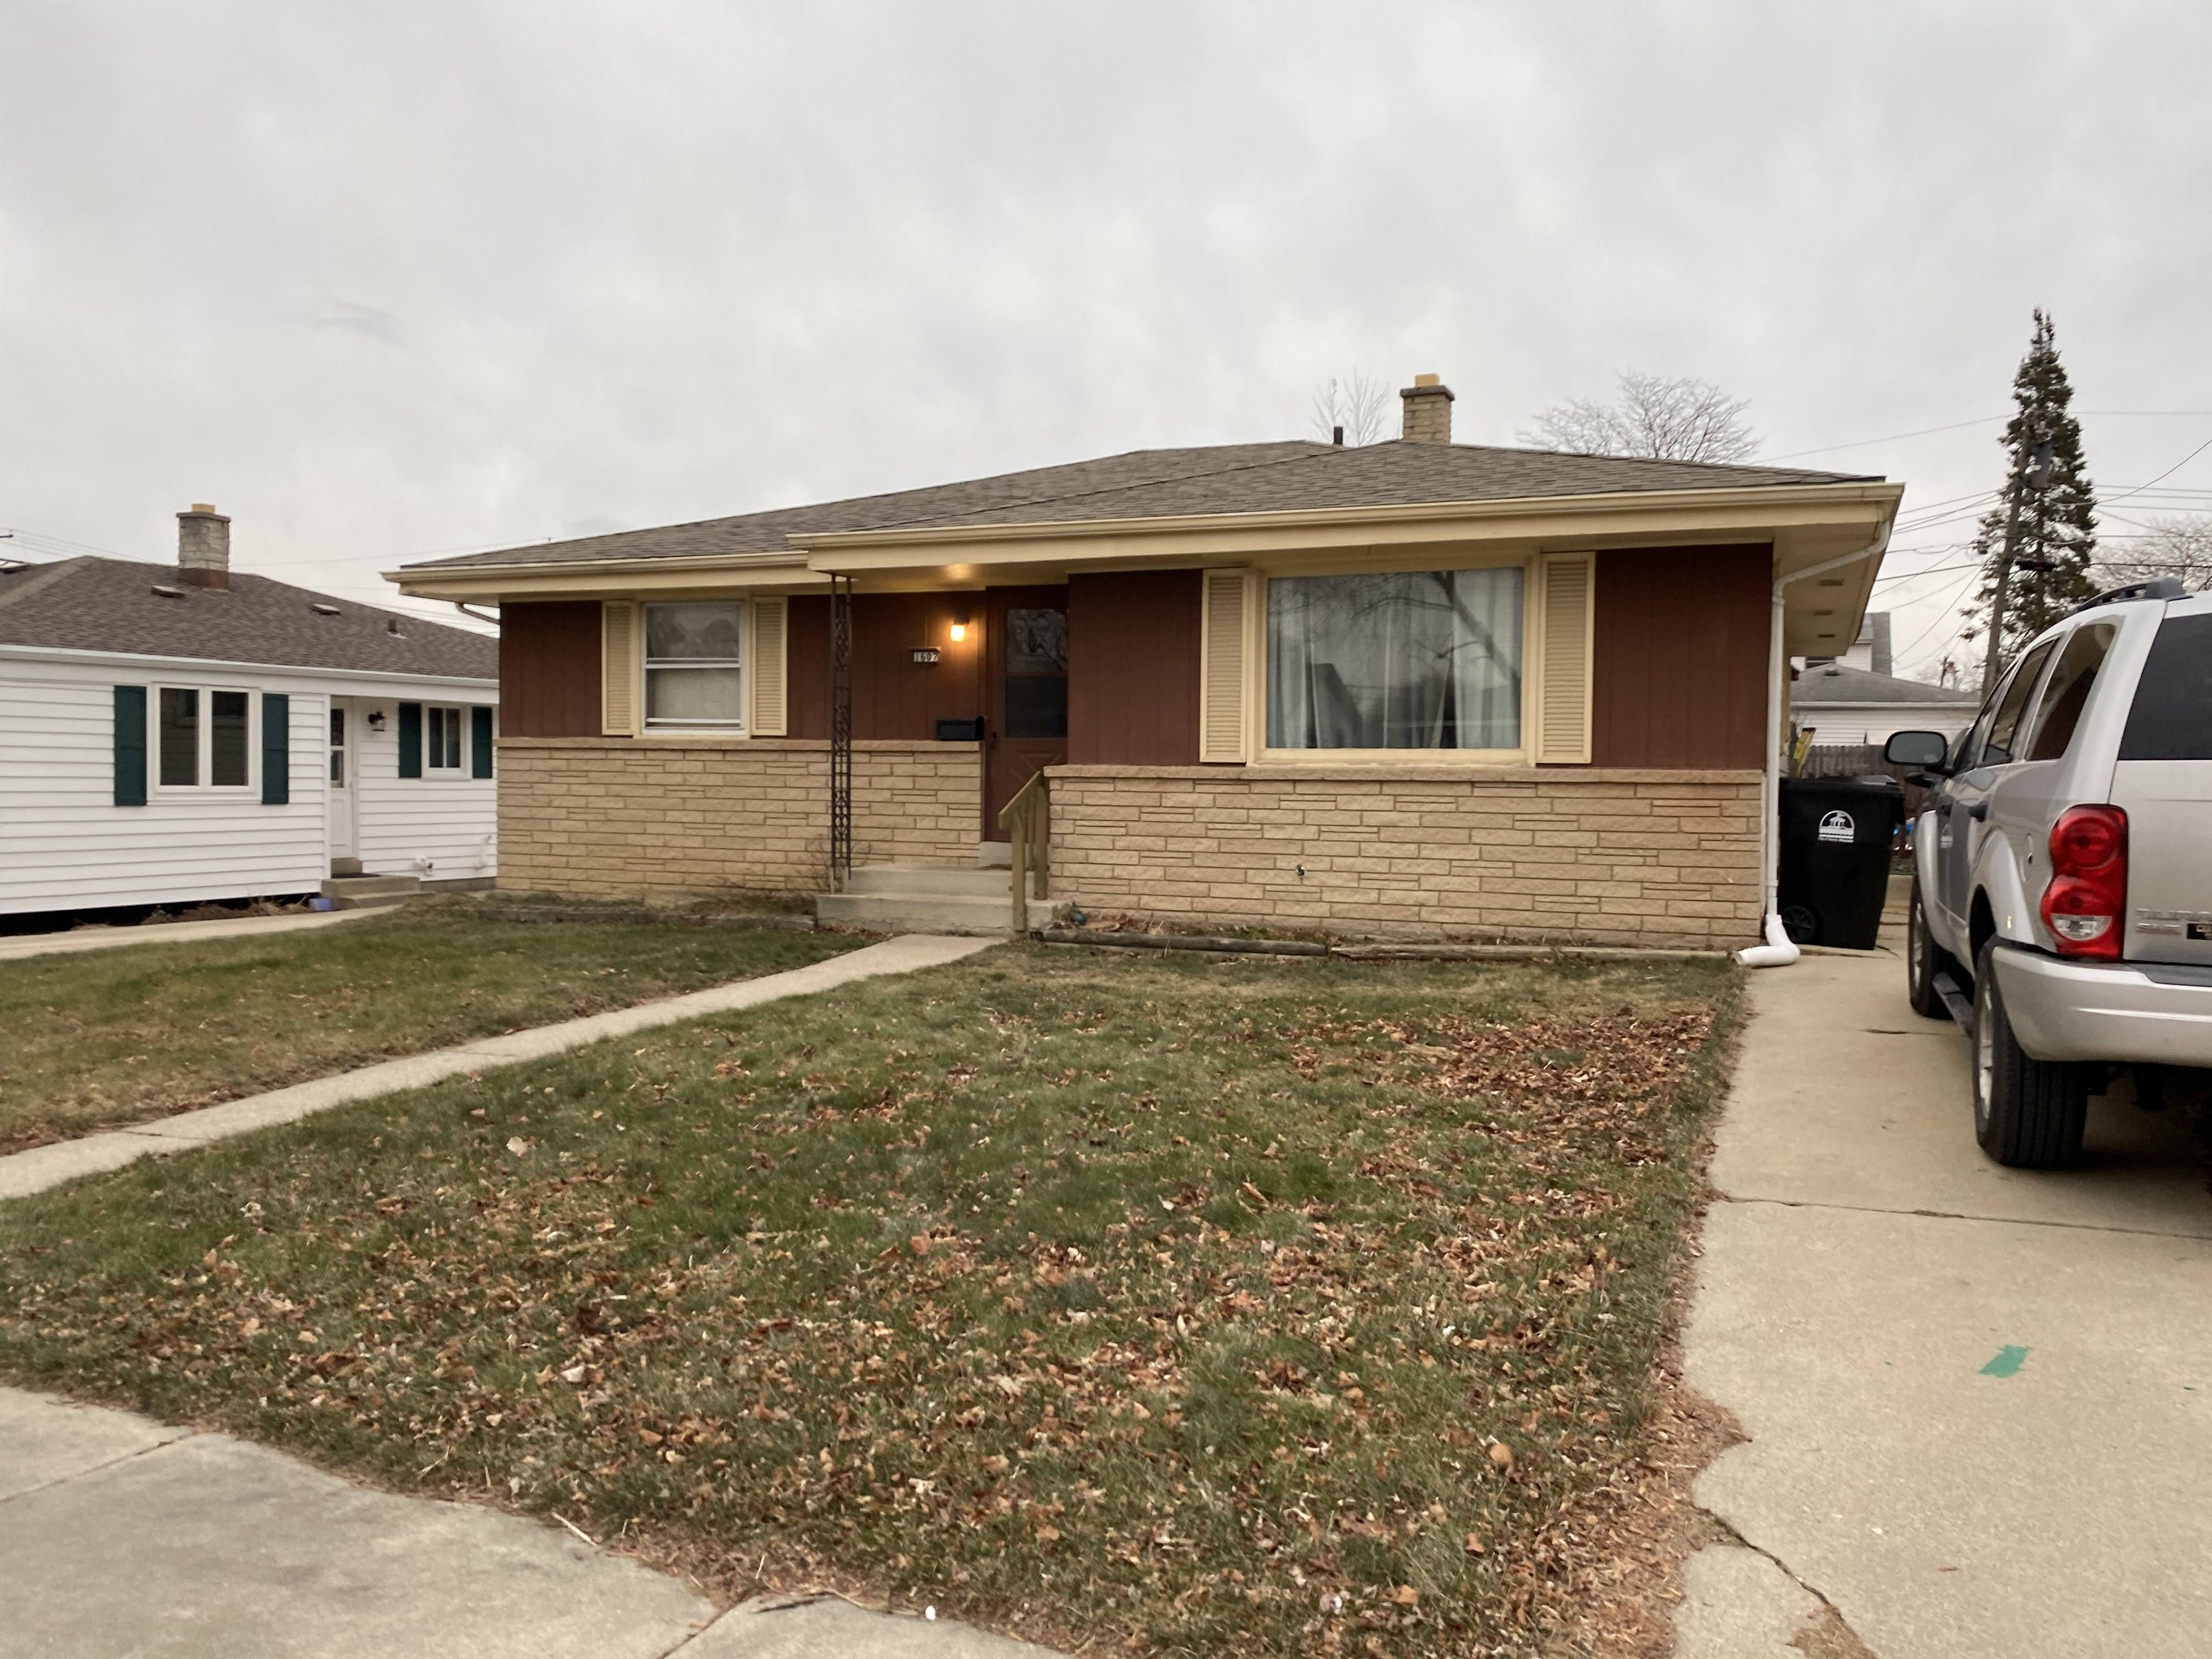 1607 Perry Ave, Racine, WI